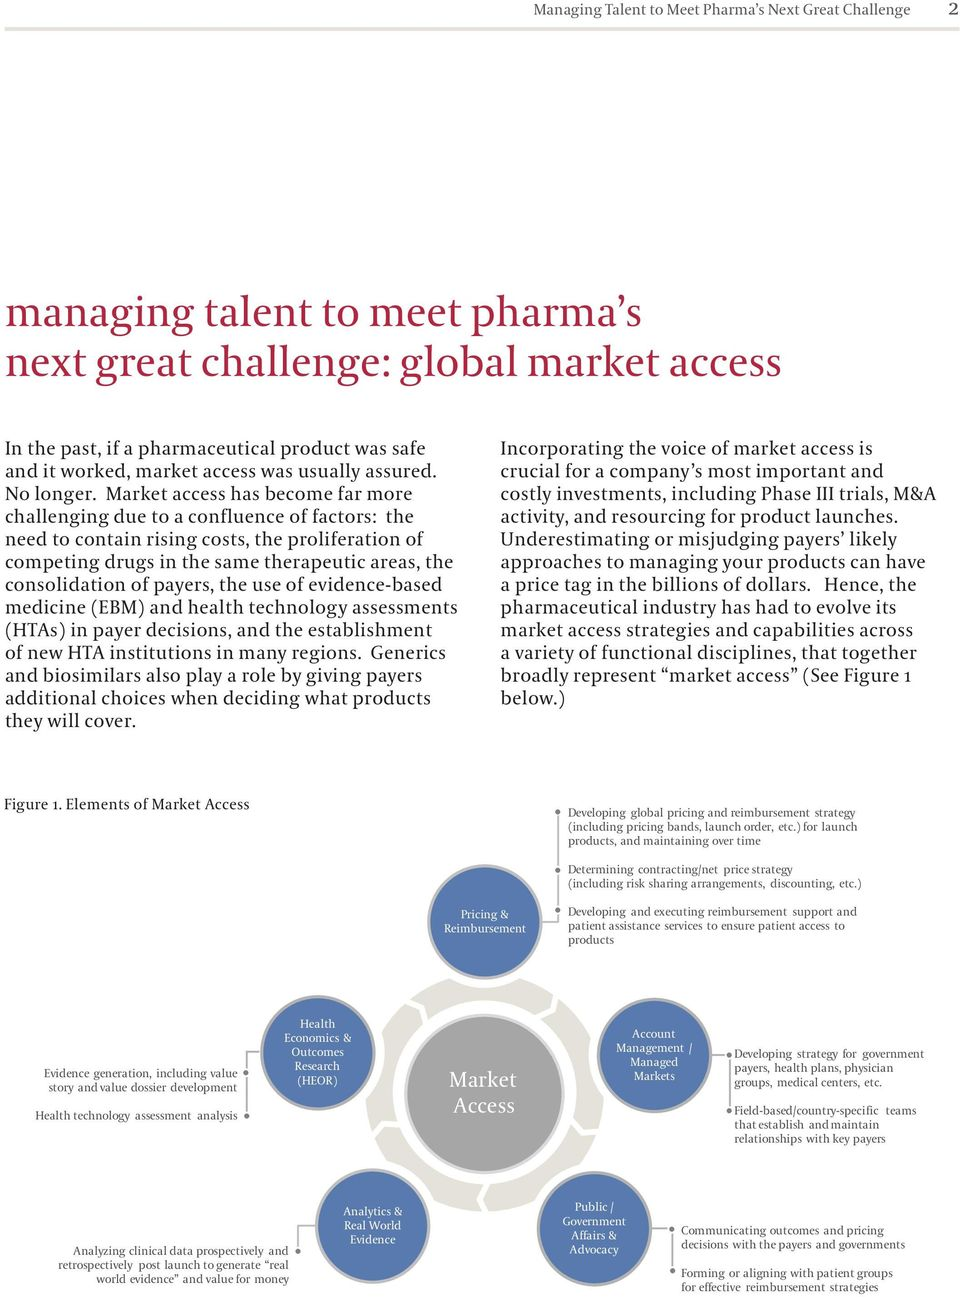 Market access has become far more challenging due to a confluence of factors: the need to contain rising costs, the proliferation of competing drugs in the same therapeutic areas, the consolidation